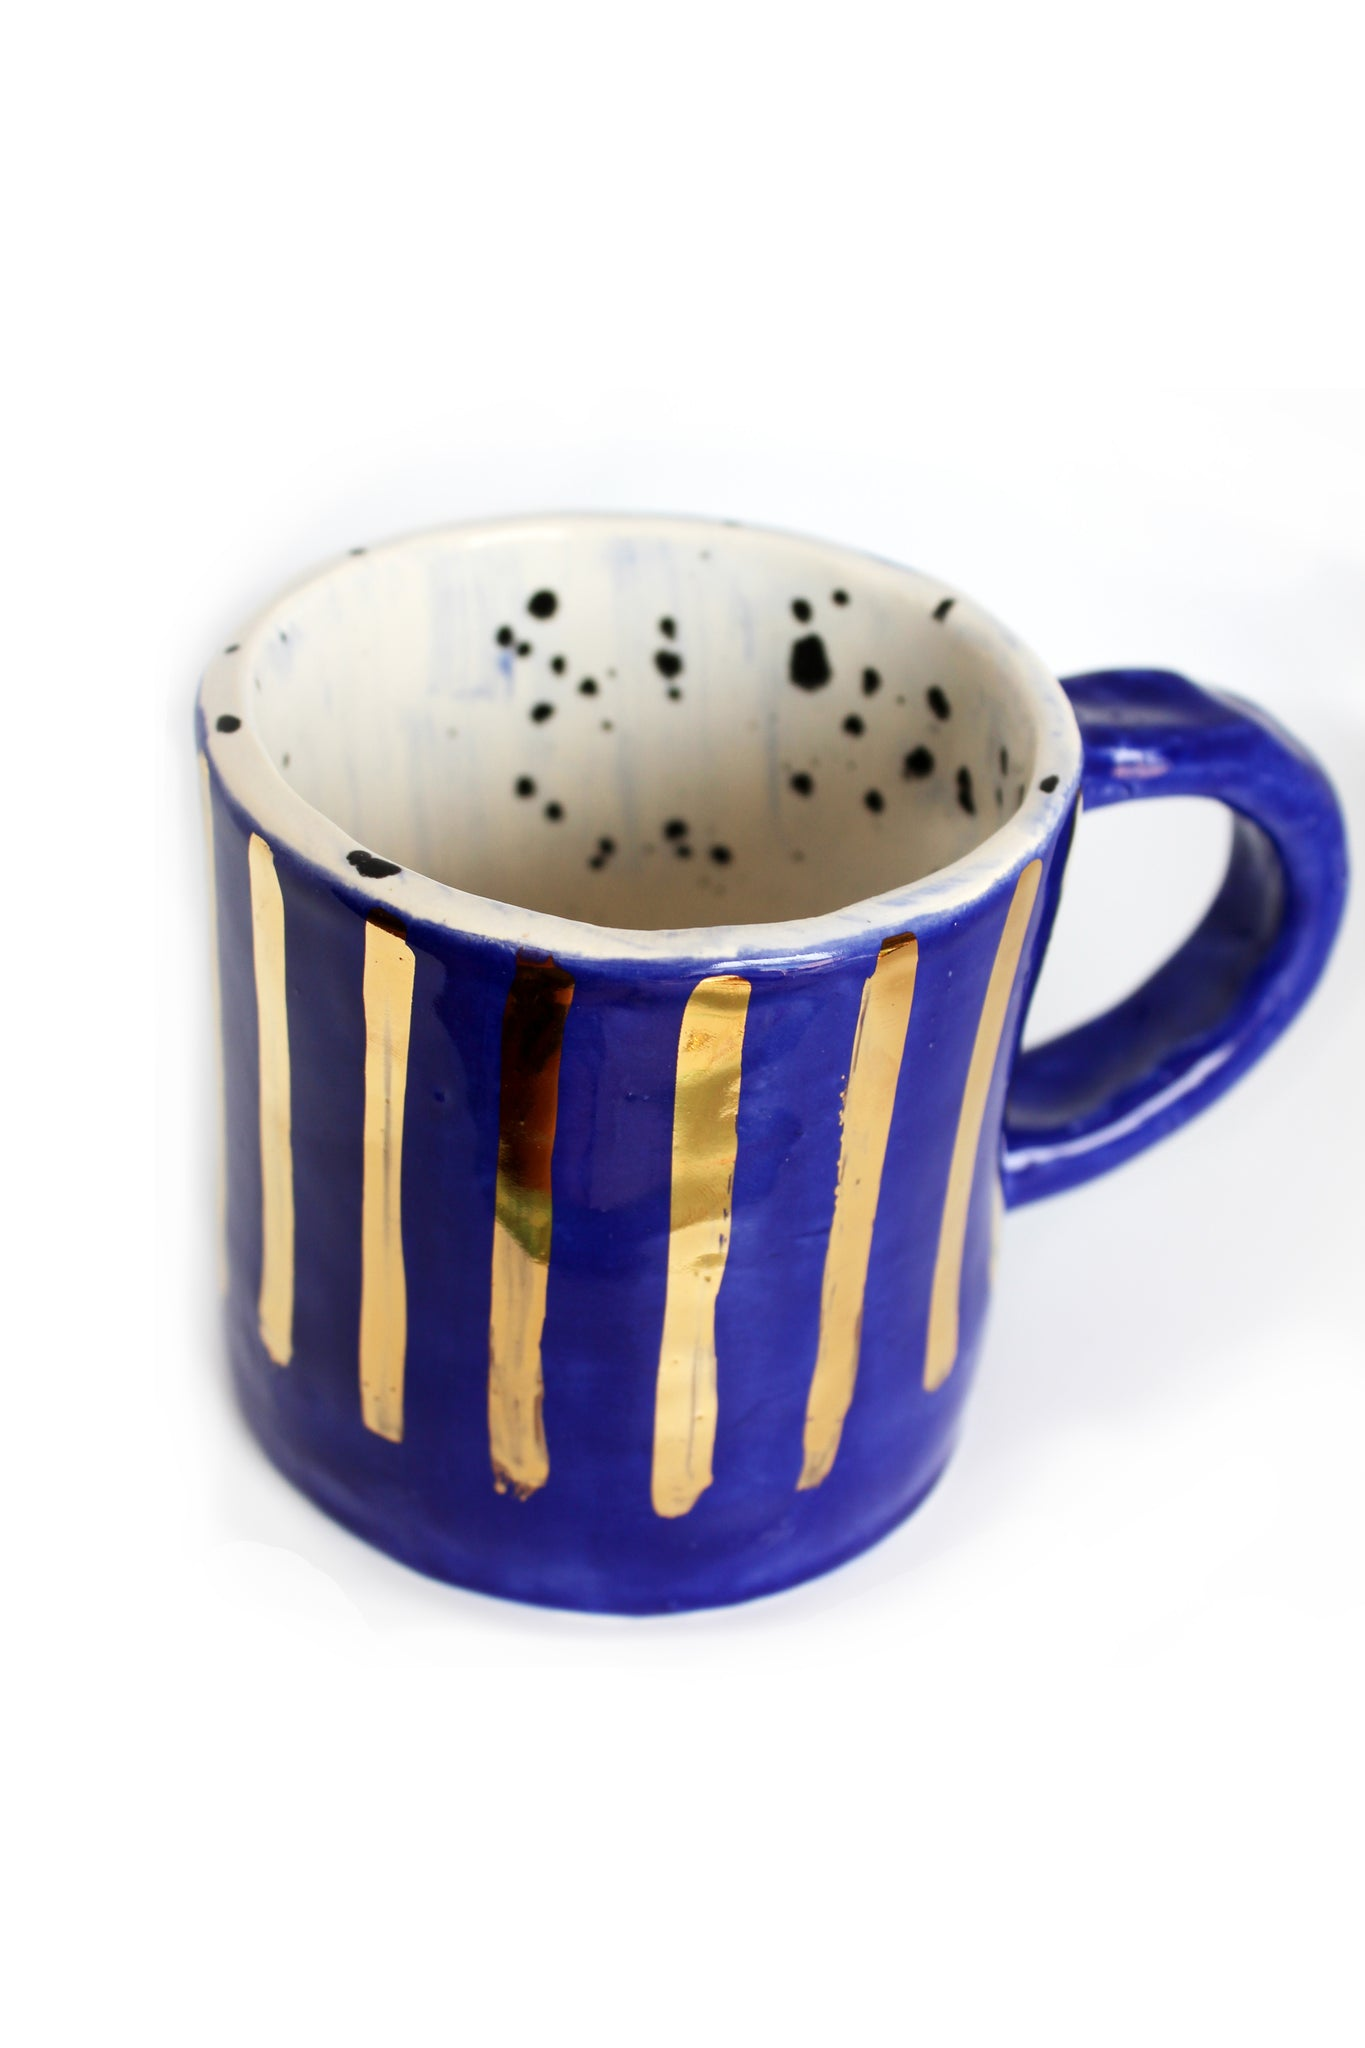 Indigo and gold coffee mug